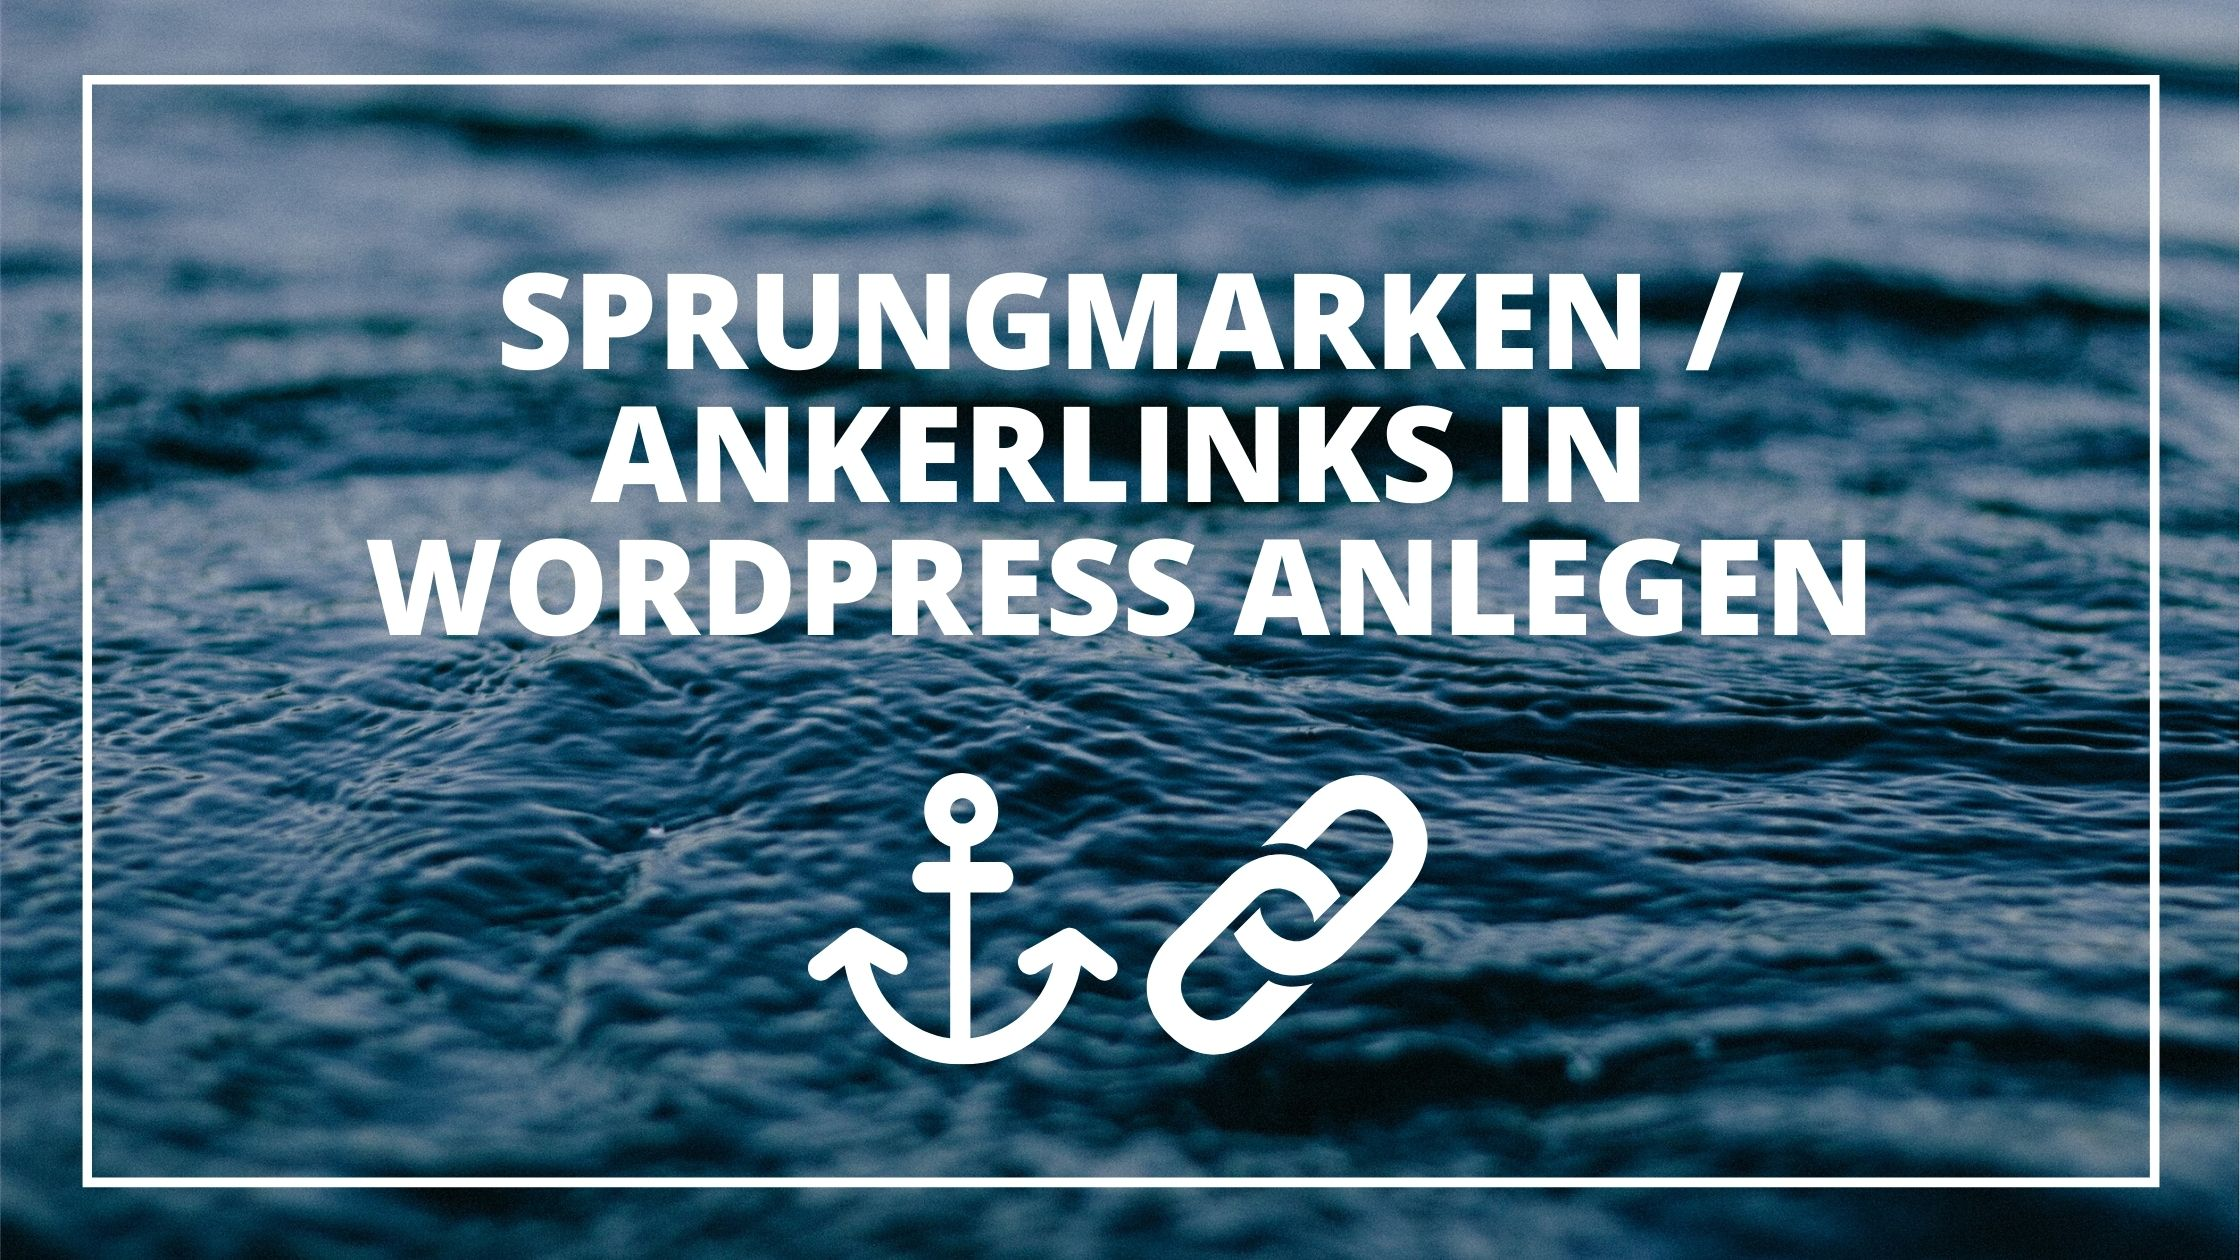 Sprungmarken / Ankerlinks in WordPress anlegen